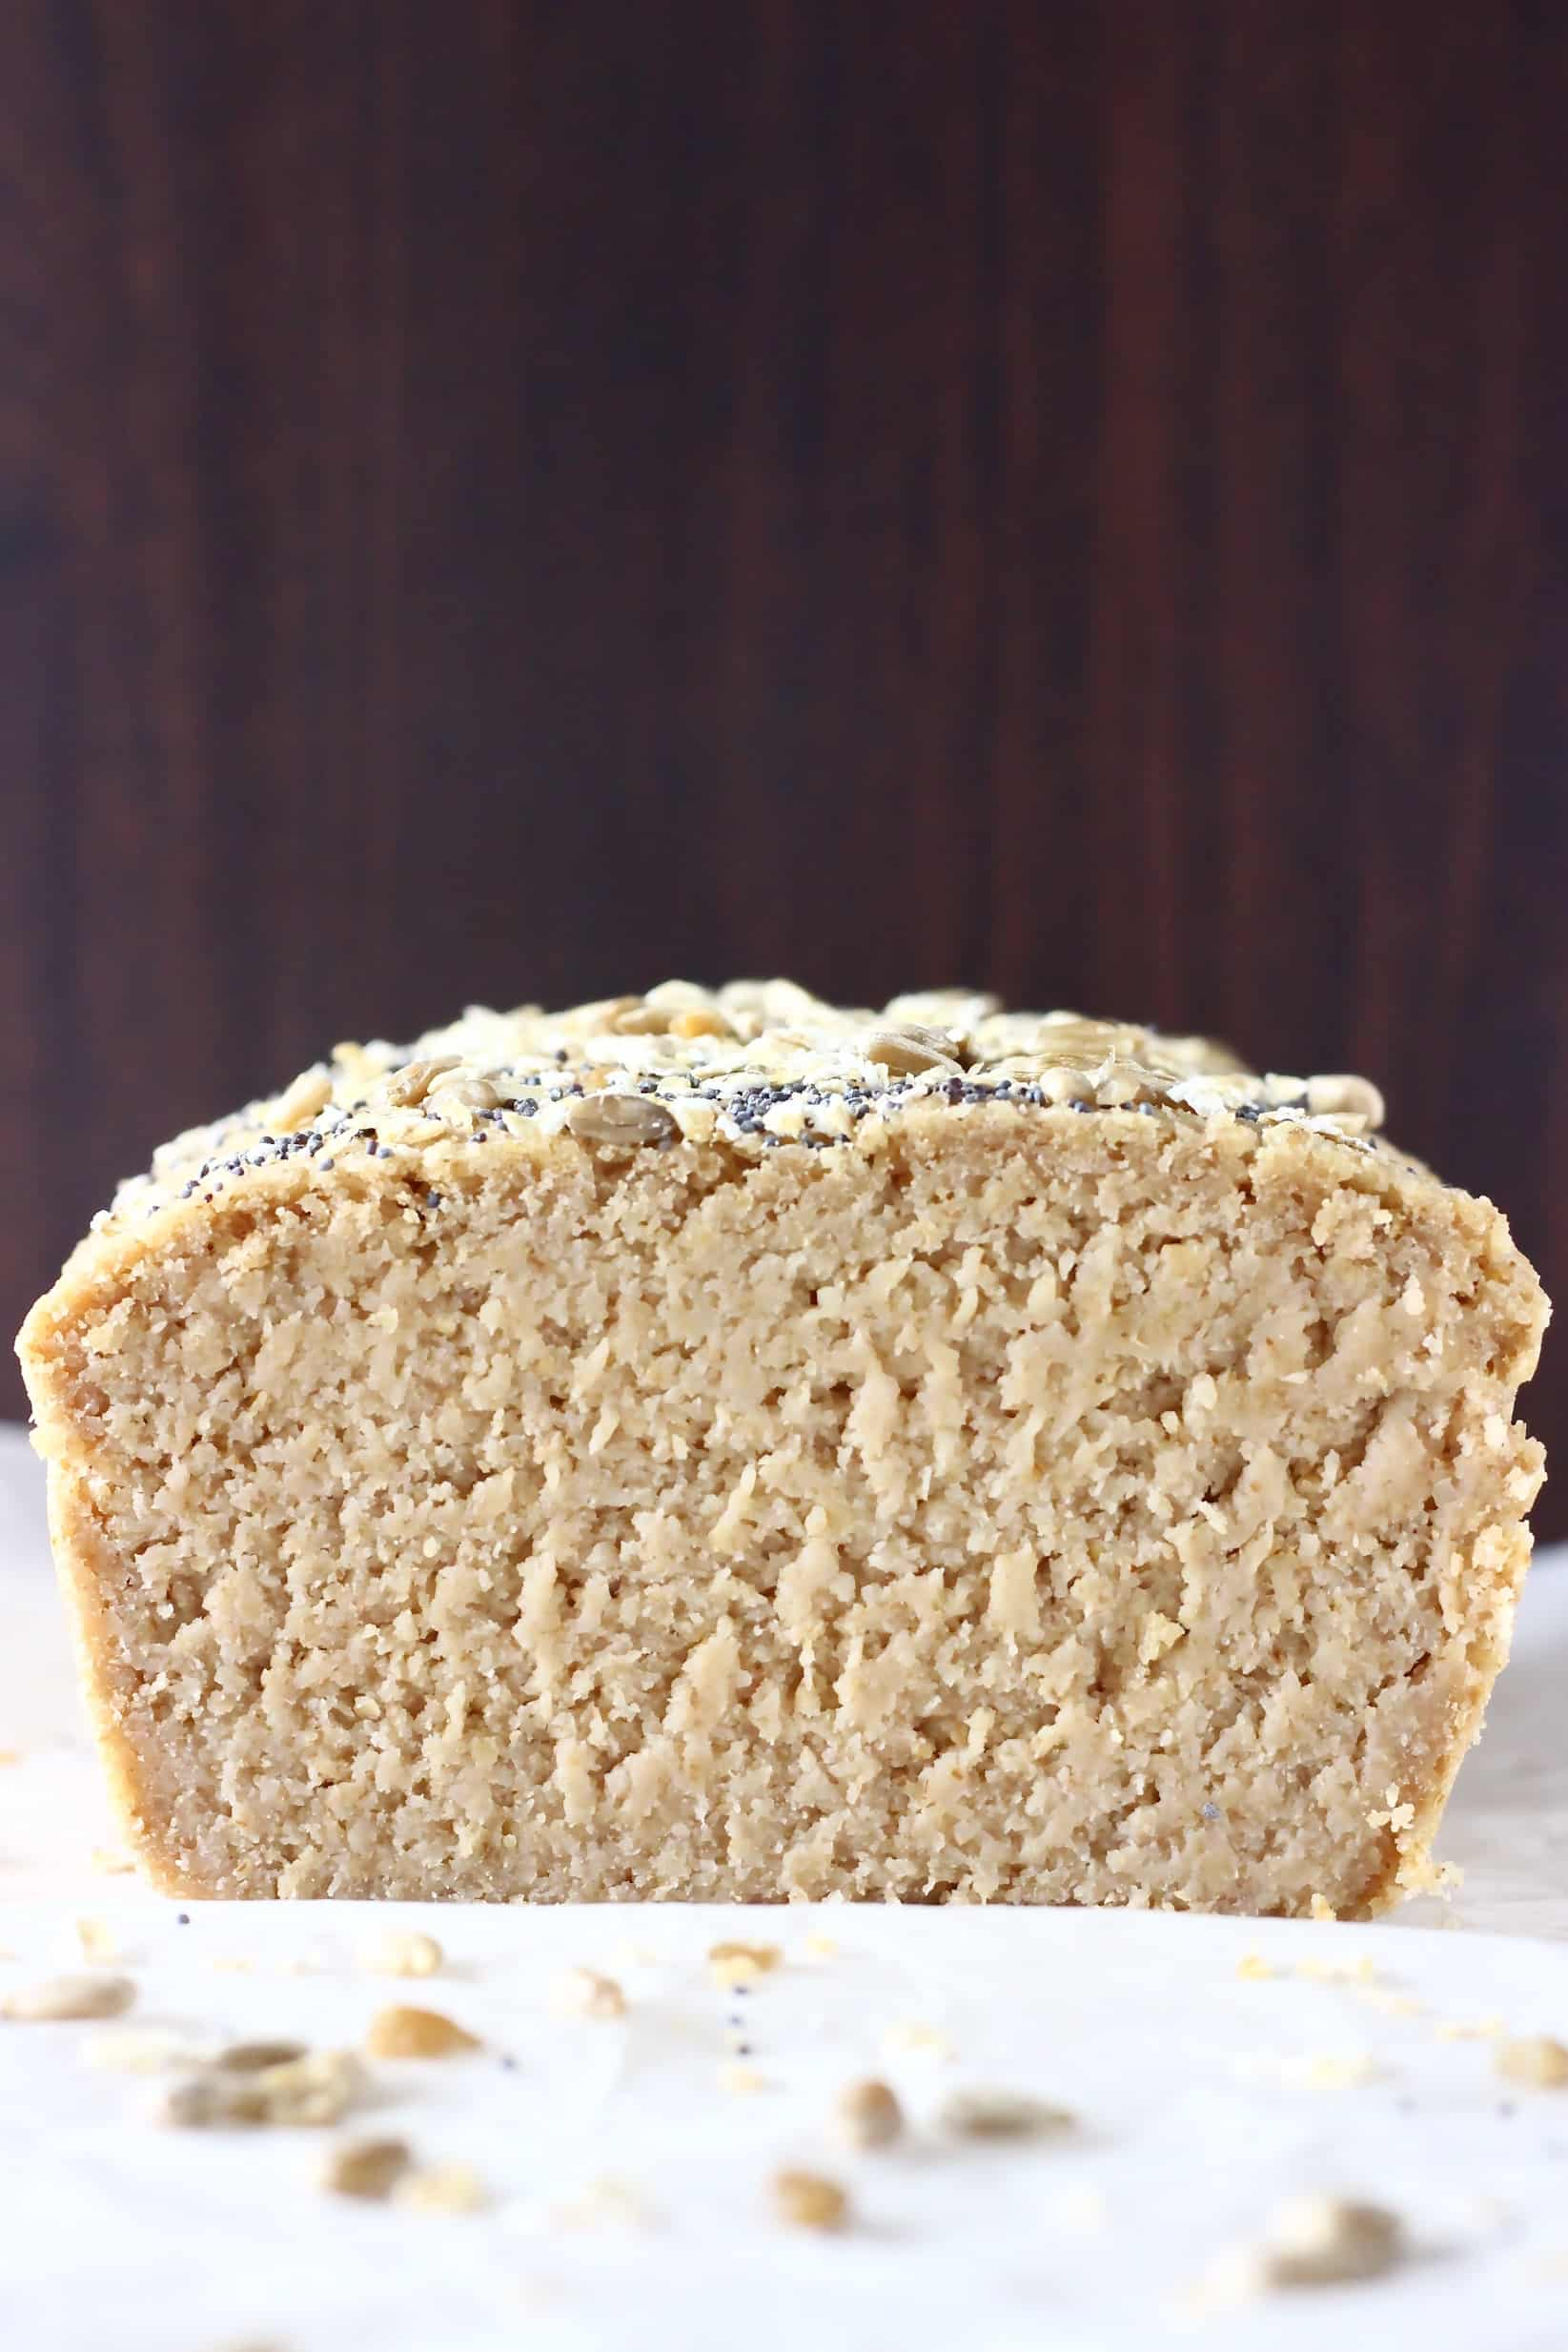 A sliced cross-section of a loaf of oat flour bread topped with oats and seeds